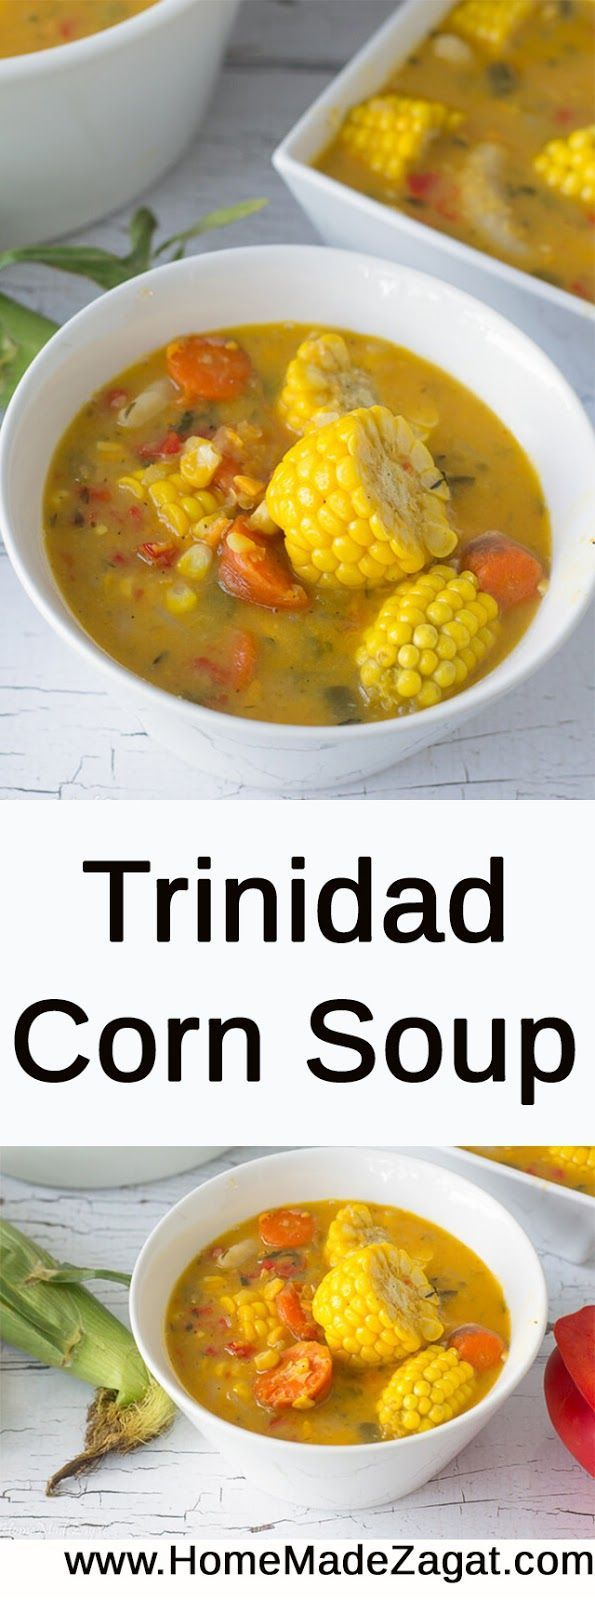 A traditional corn soup recipe for this popular Trini street food. Made with split peas, corn and dumplings this soup is commonly an after fete snack especially around carnival time